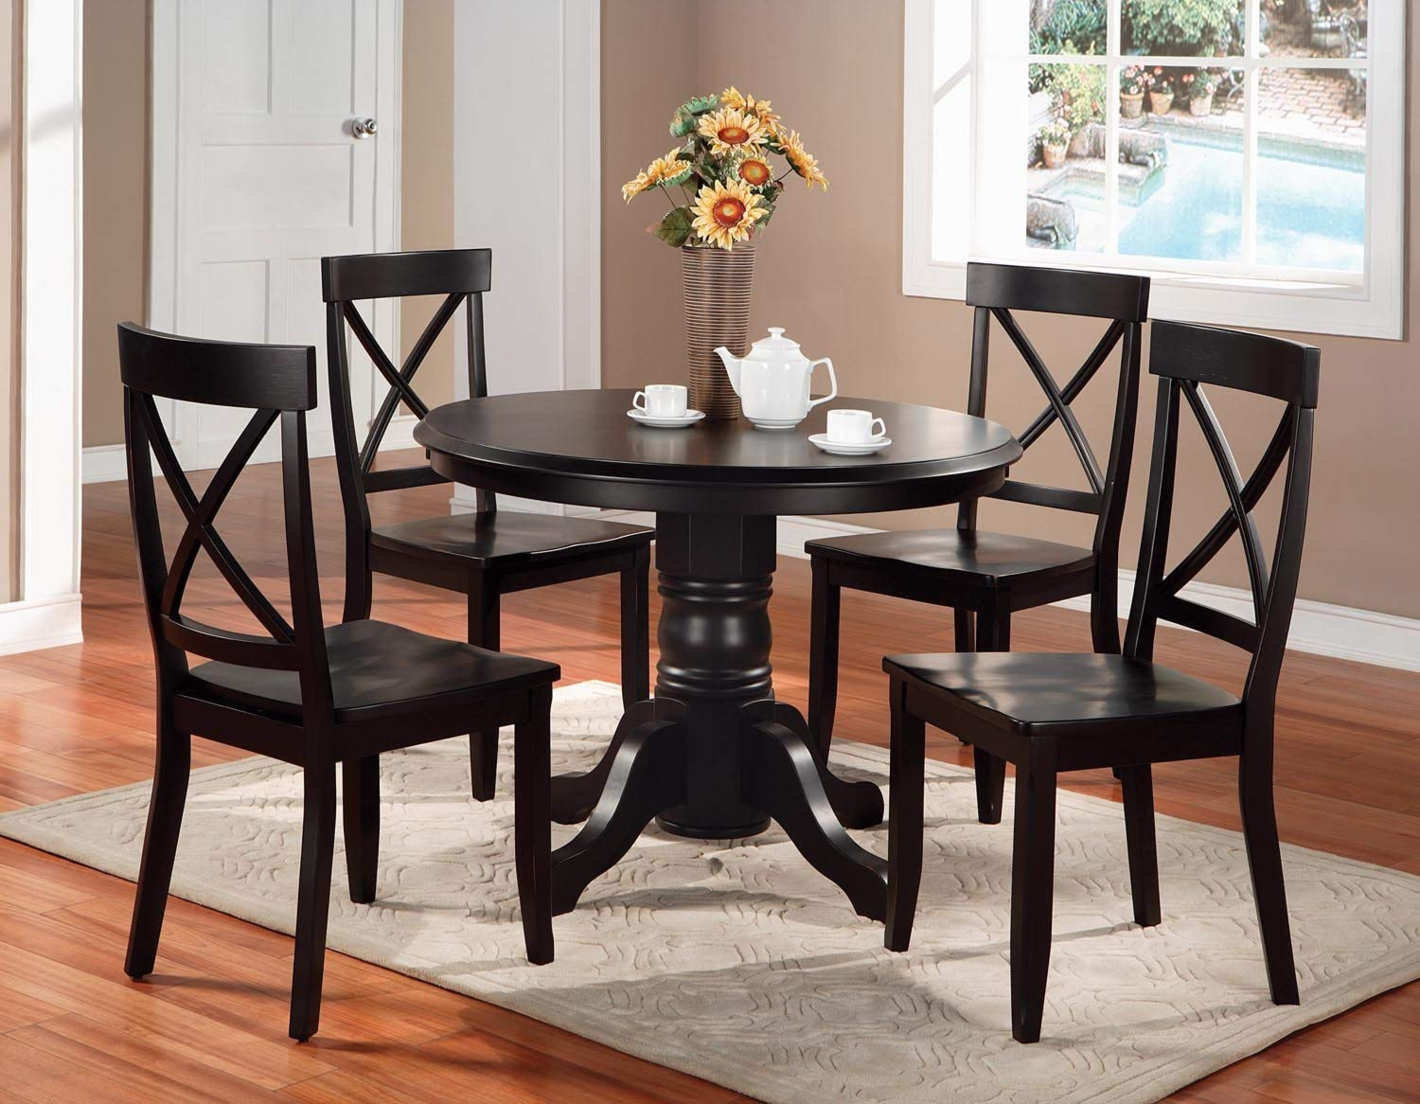 Home Styles 5 Piece Dining Set, Black Finish